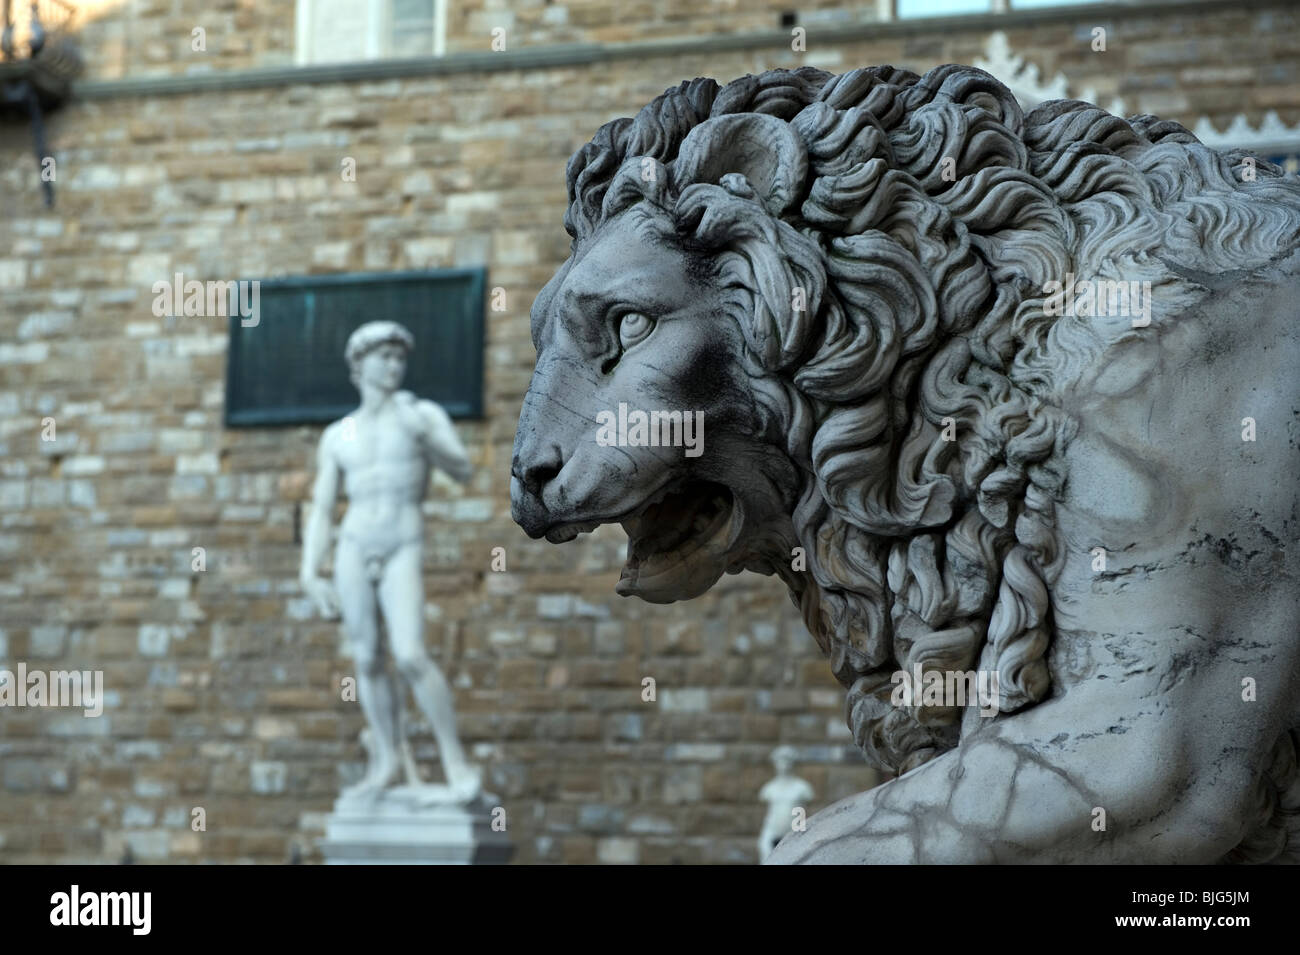 Florence,Tuscany,Italy. Statues of David by Michelangelo ( copy ) on left and the Flaminio Vaca-Lion - Stock Image